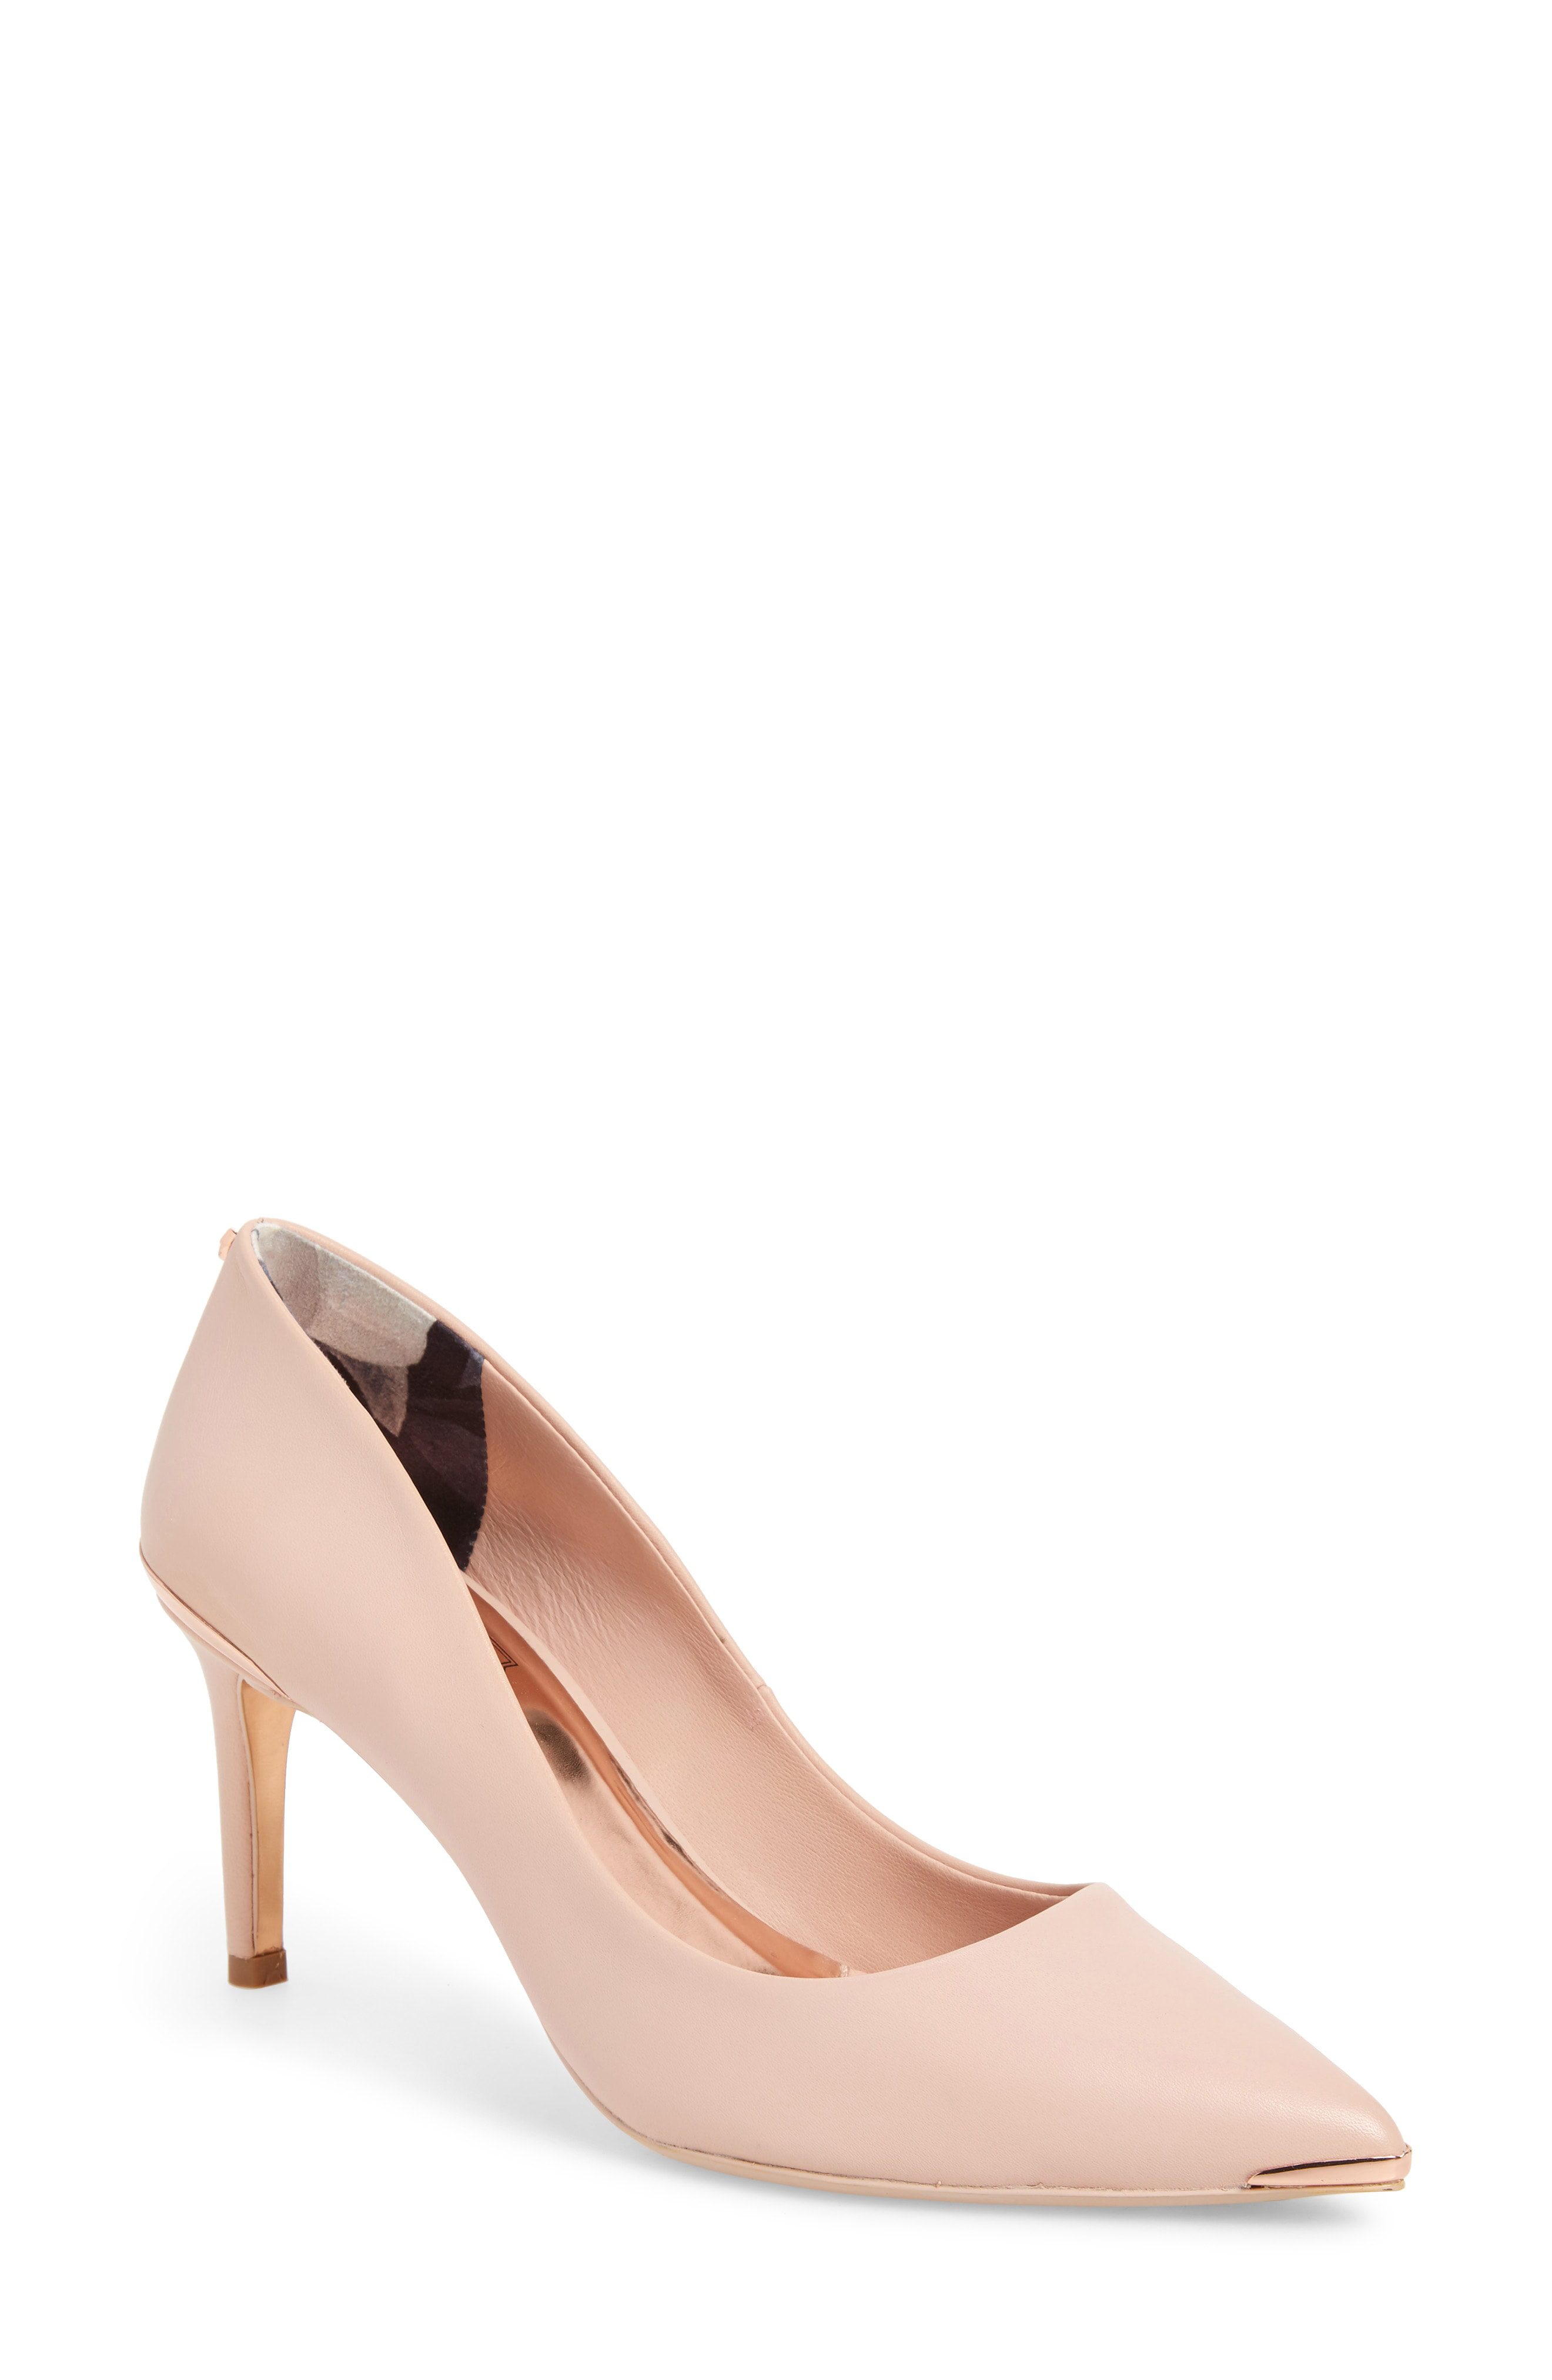 3d5c175839 Ted Baker Women's Wishiri Pointed-Toe Pumps In Nude Leather. Nordstrom